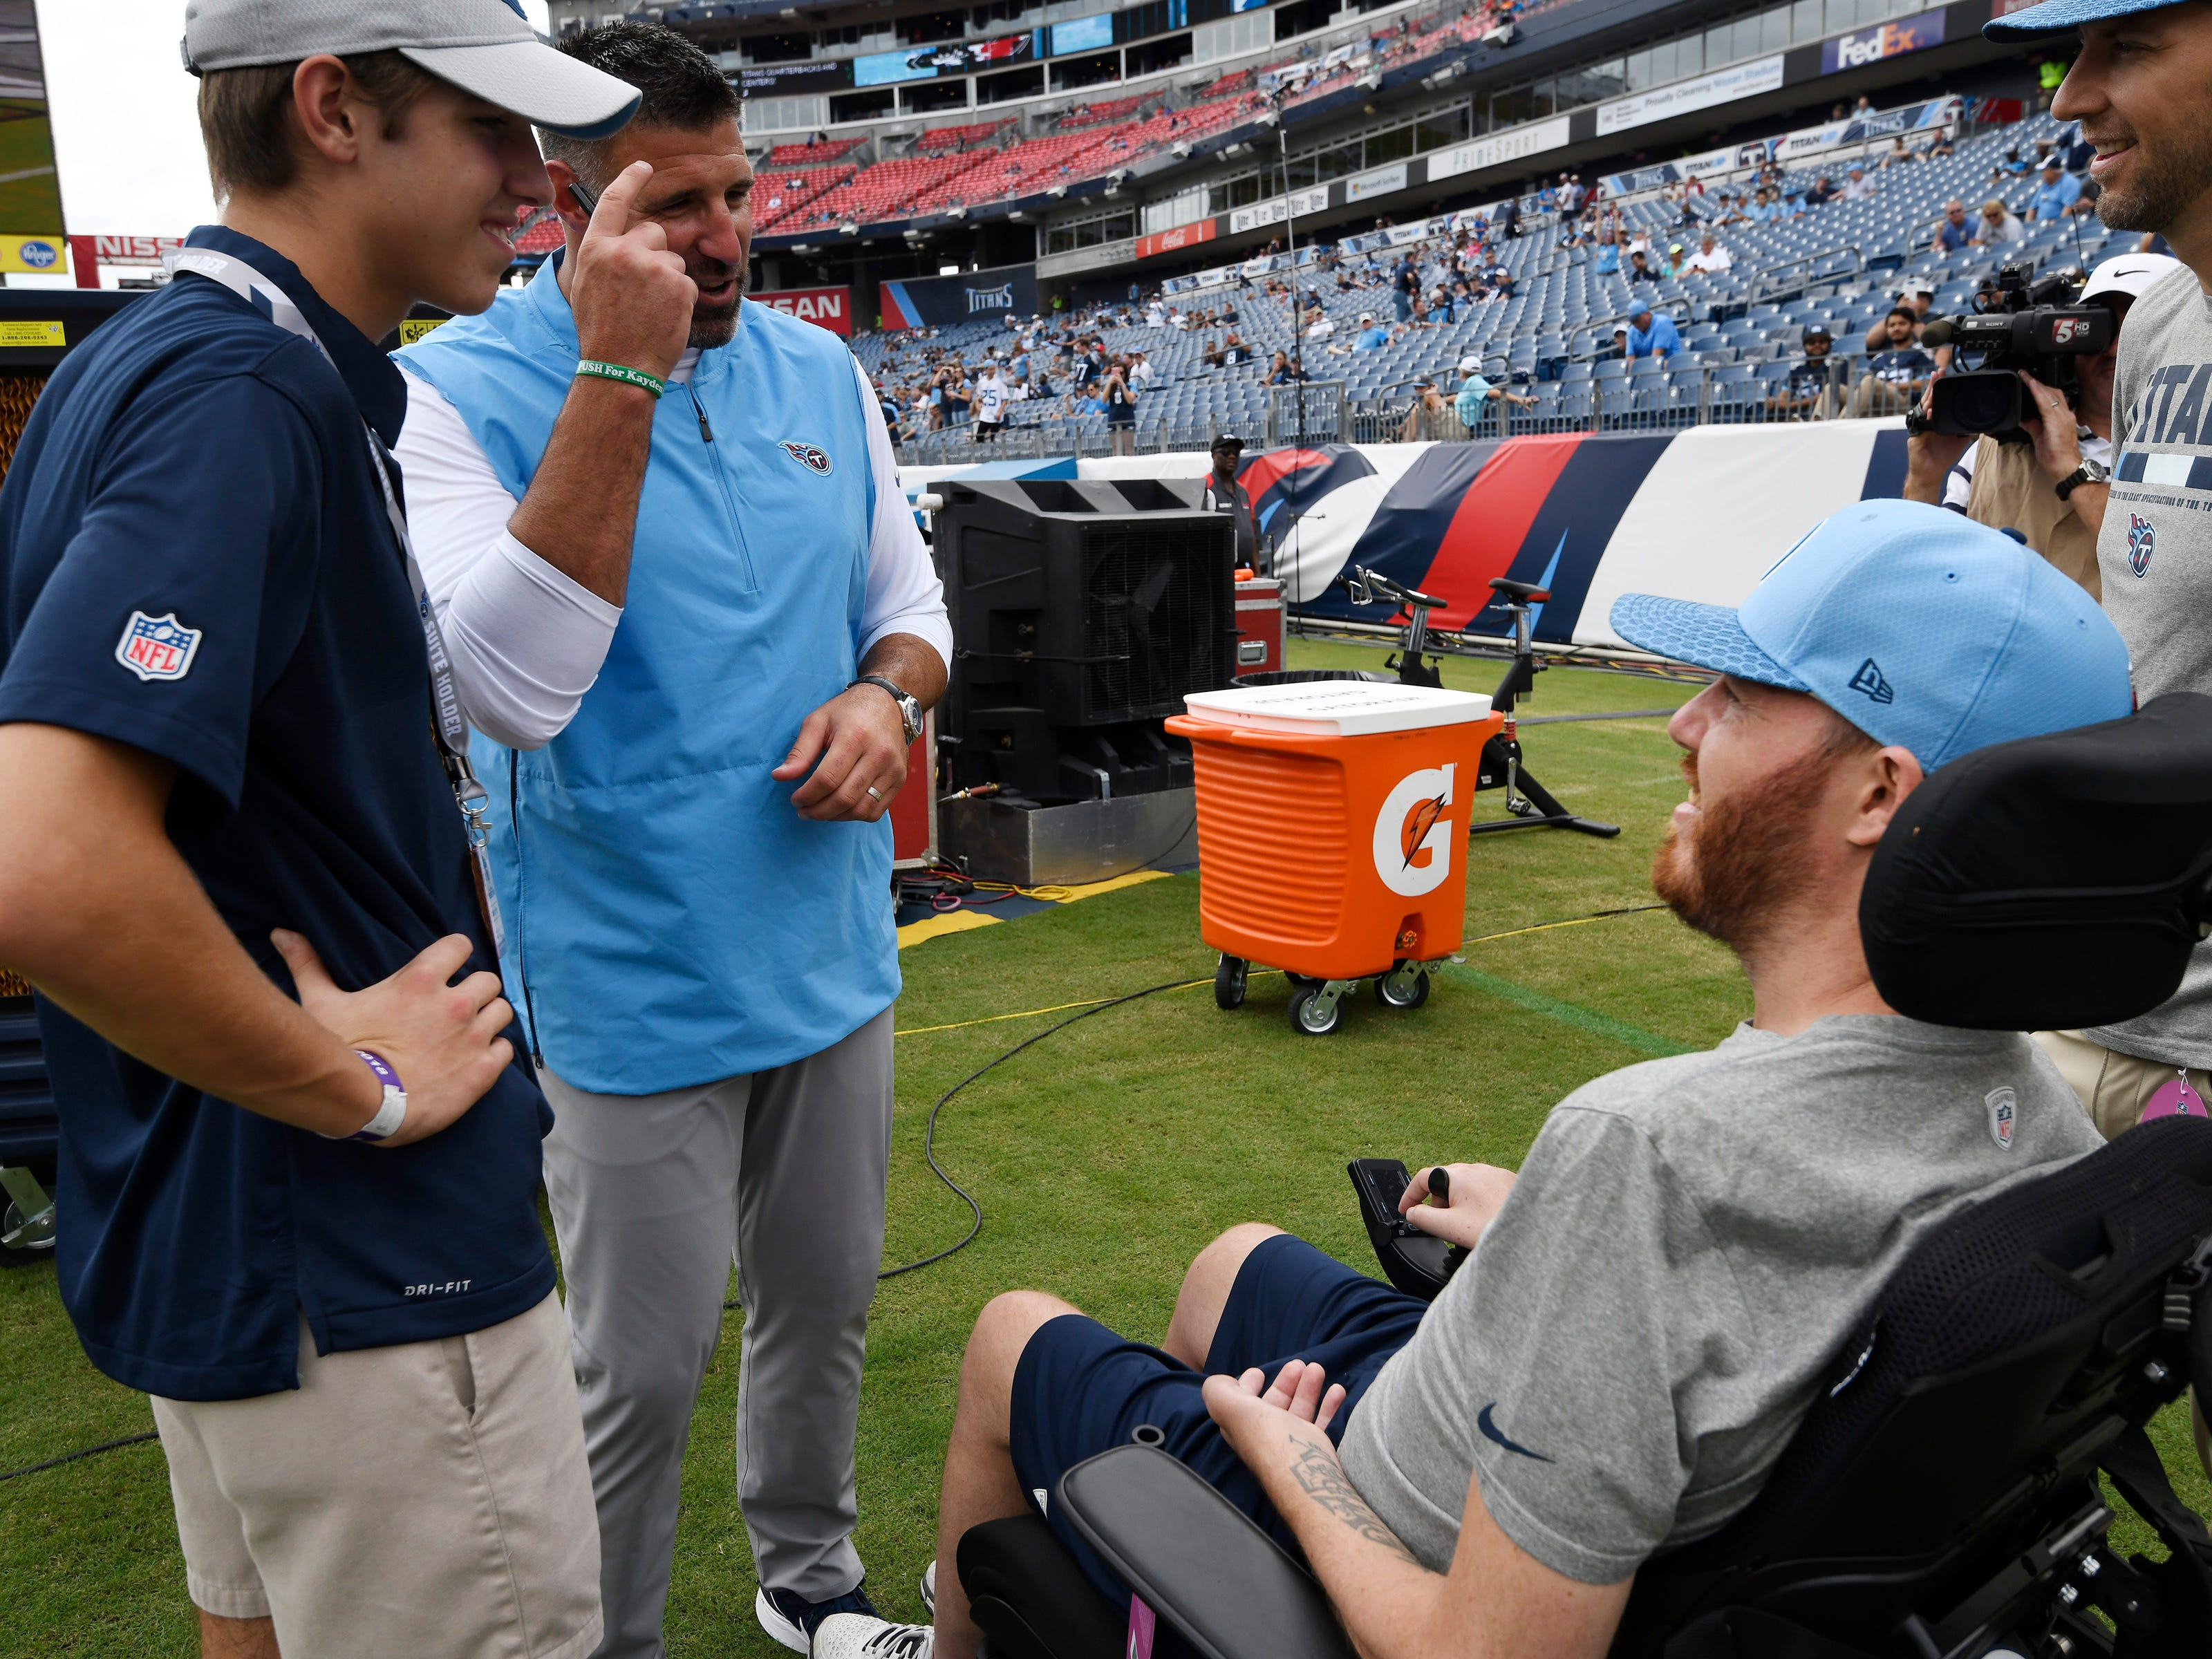 Titans head coach Mike Vrabel and his son Carter chat with former Titan Tim Shaw before the game at Nissan Stadium Sunday, Sept. 16, 2018, in Nashville, Tenn.